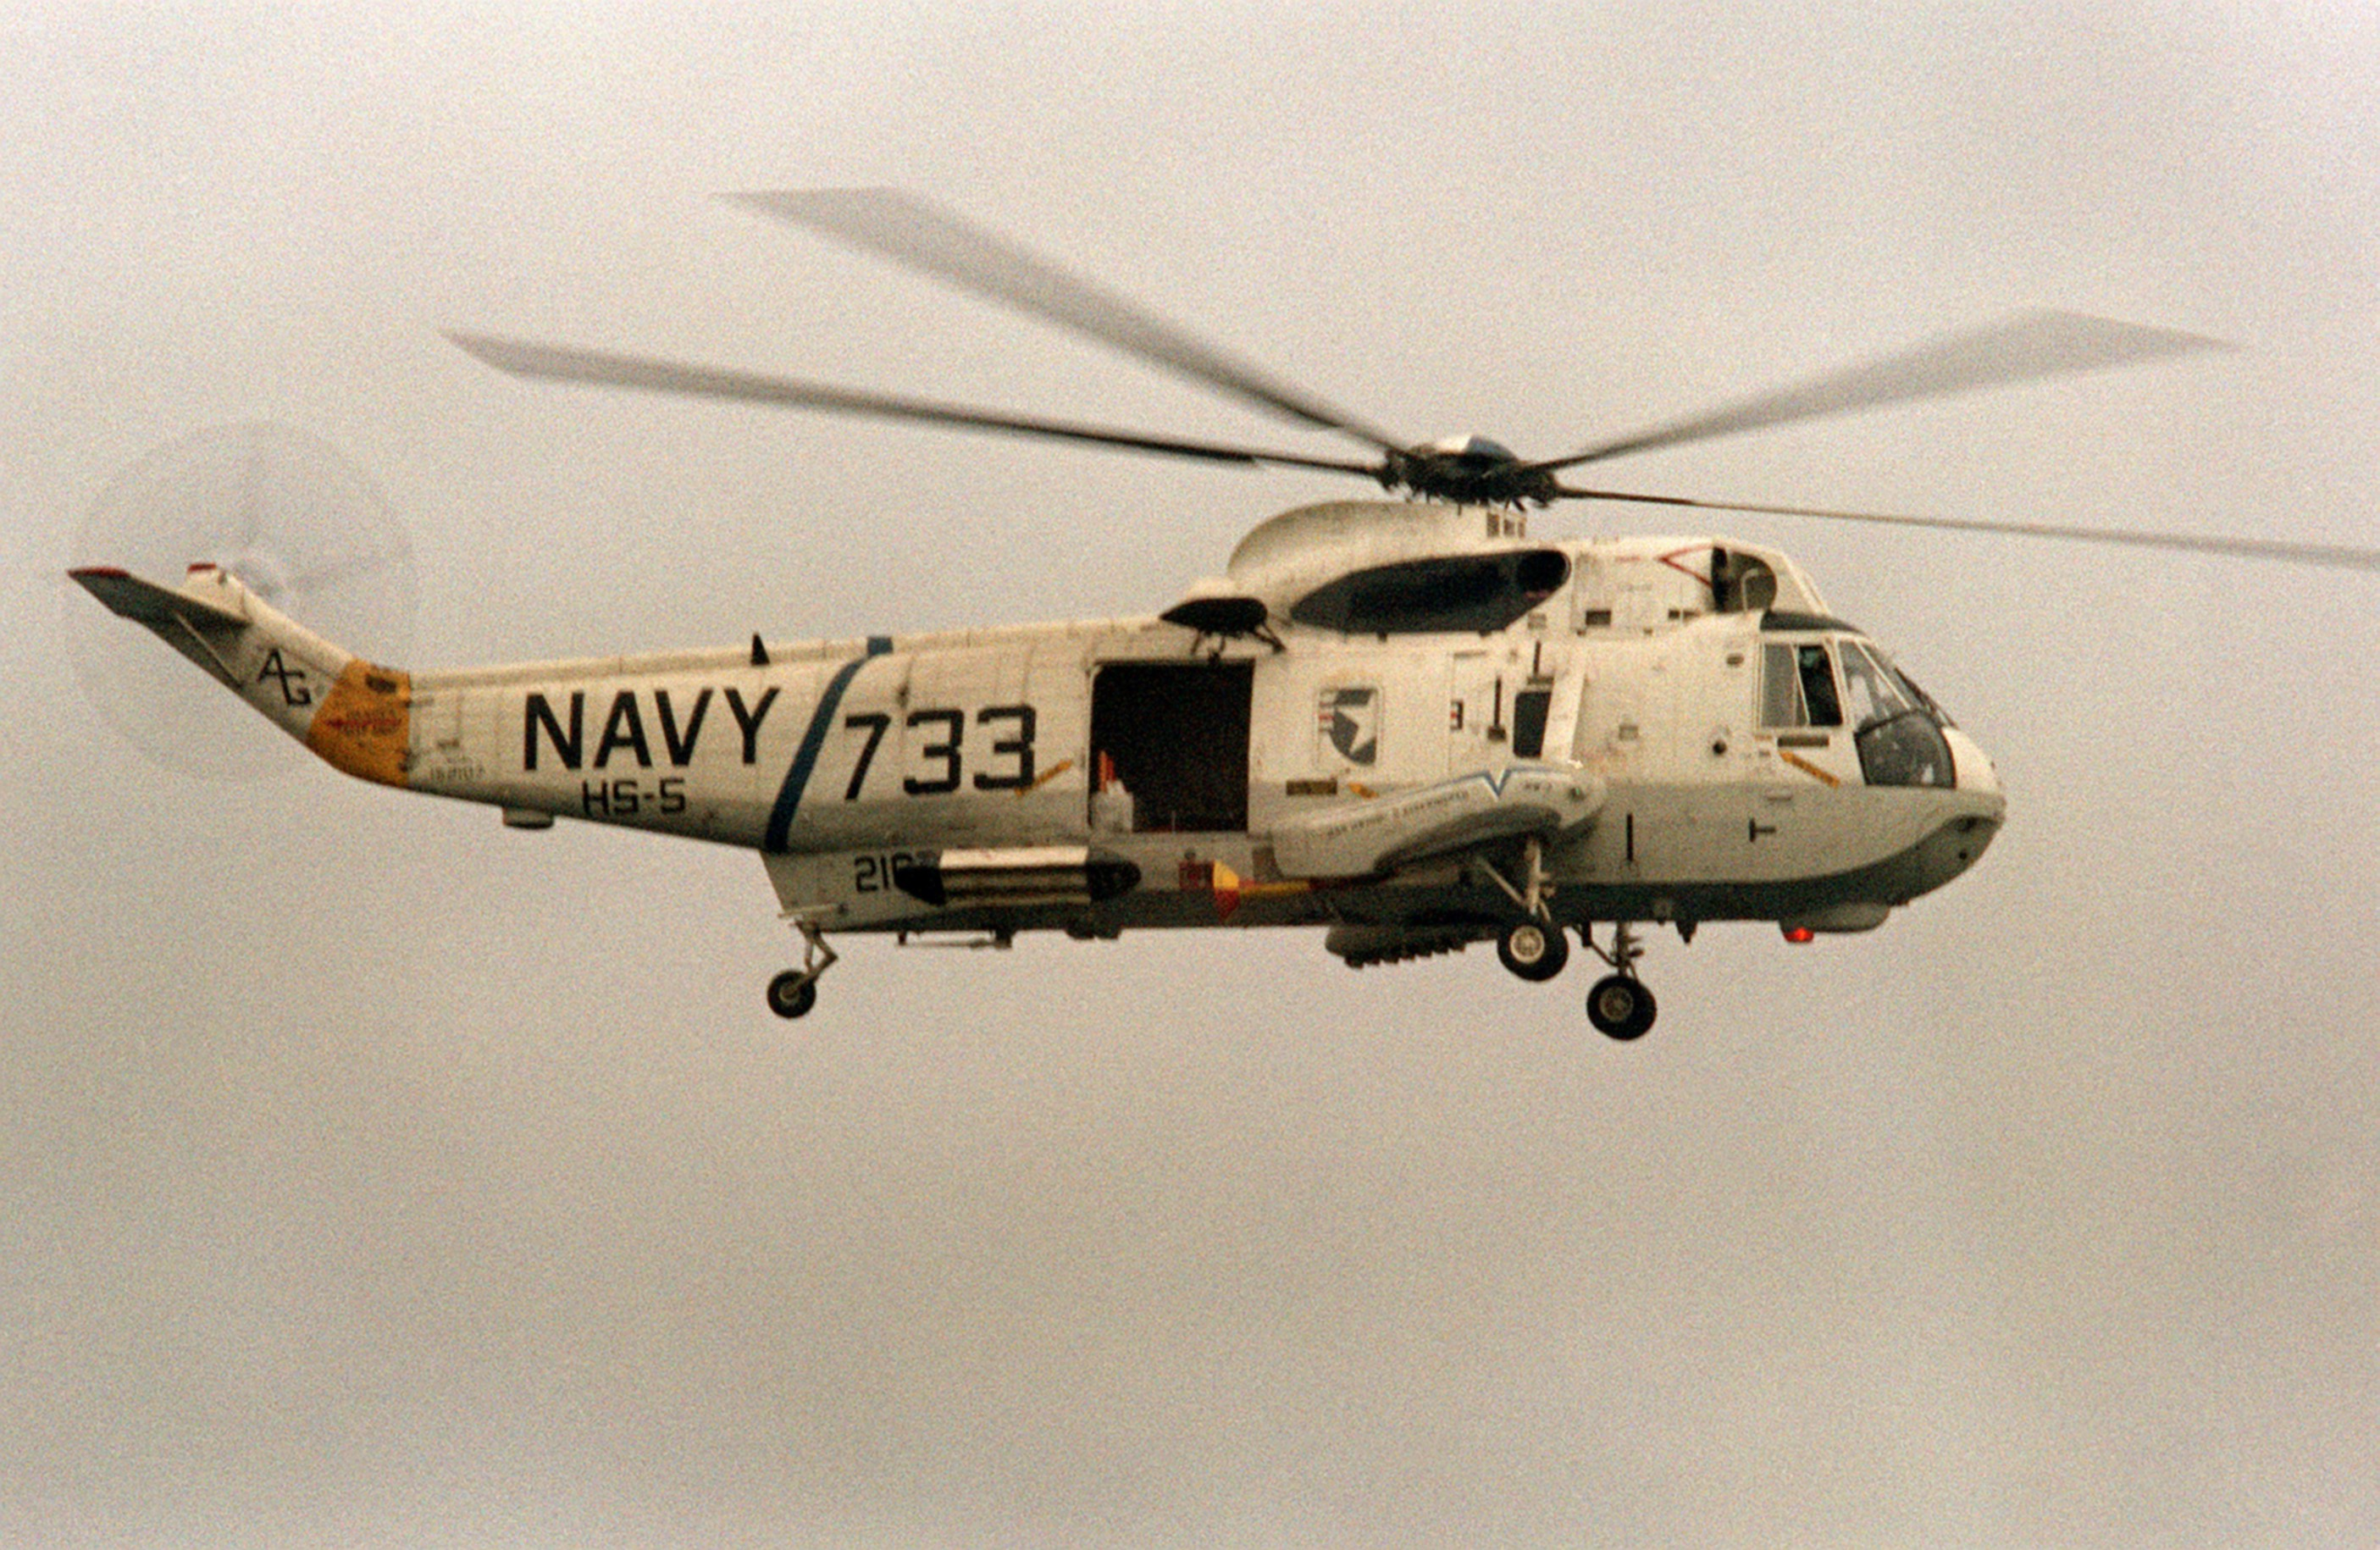 h 6 helicopter with File Sh 3h Hs 5 Over Uss Eisenhower  Cvn 69  1980 on Bell 206l3 Long Ranger likewise Helicopter Dynamics Chapter 2 besides Aircraft Preserved In Canada 2 Warplanes In Alberta 393 also 1756 further PT 91.